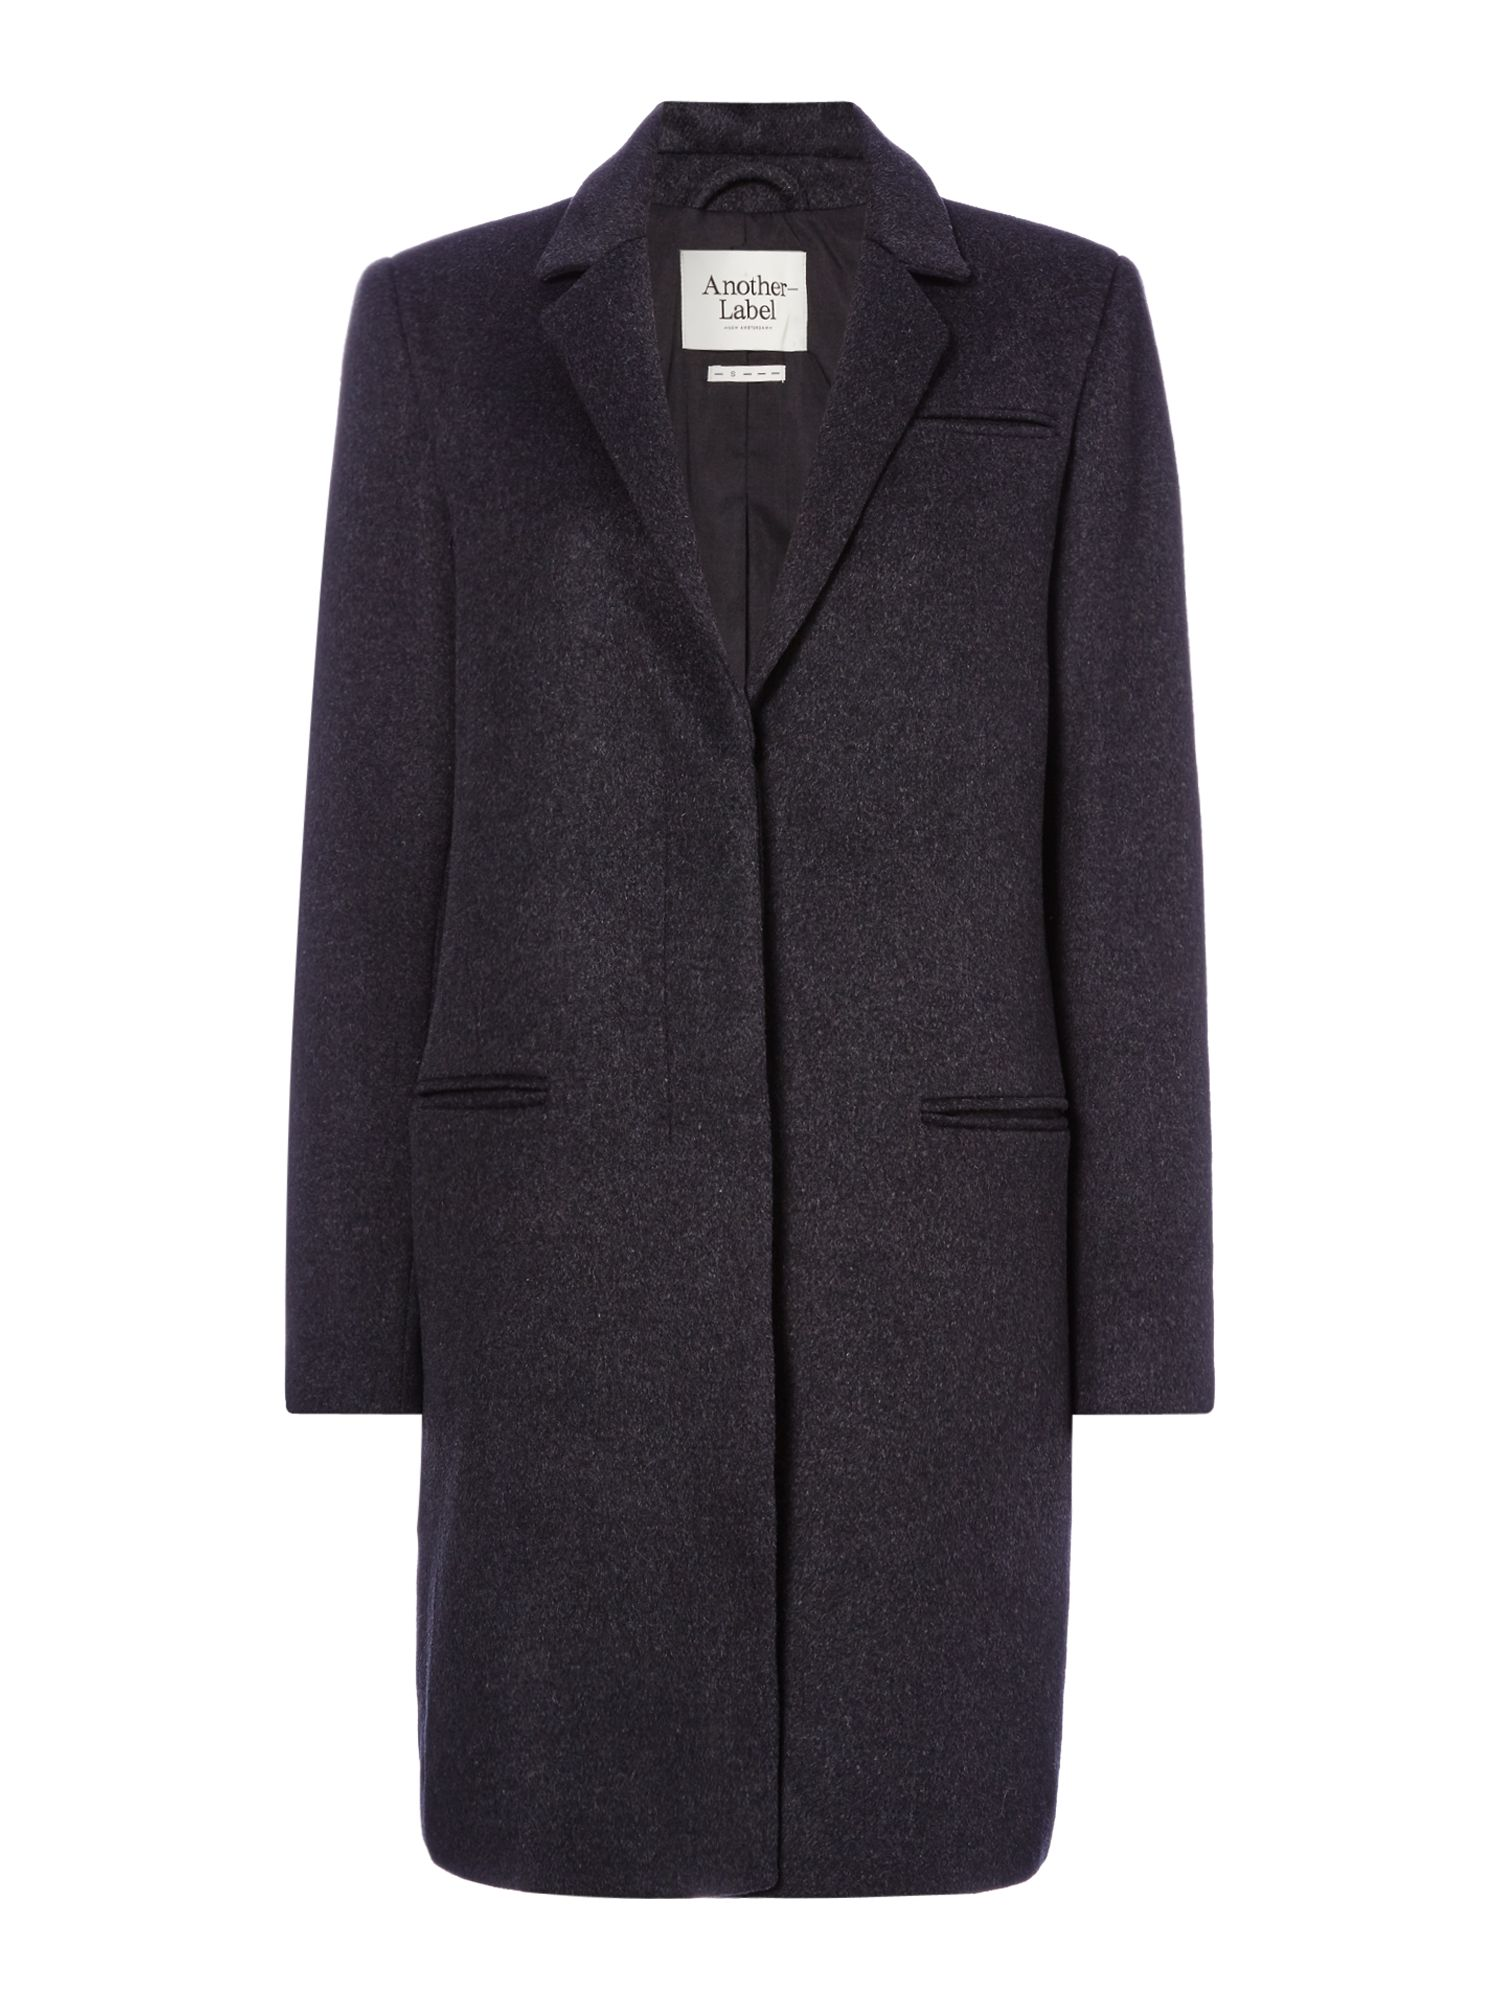 Another Label Dono wool coat, Charcoal